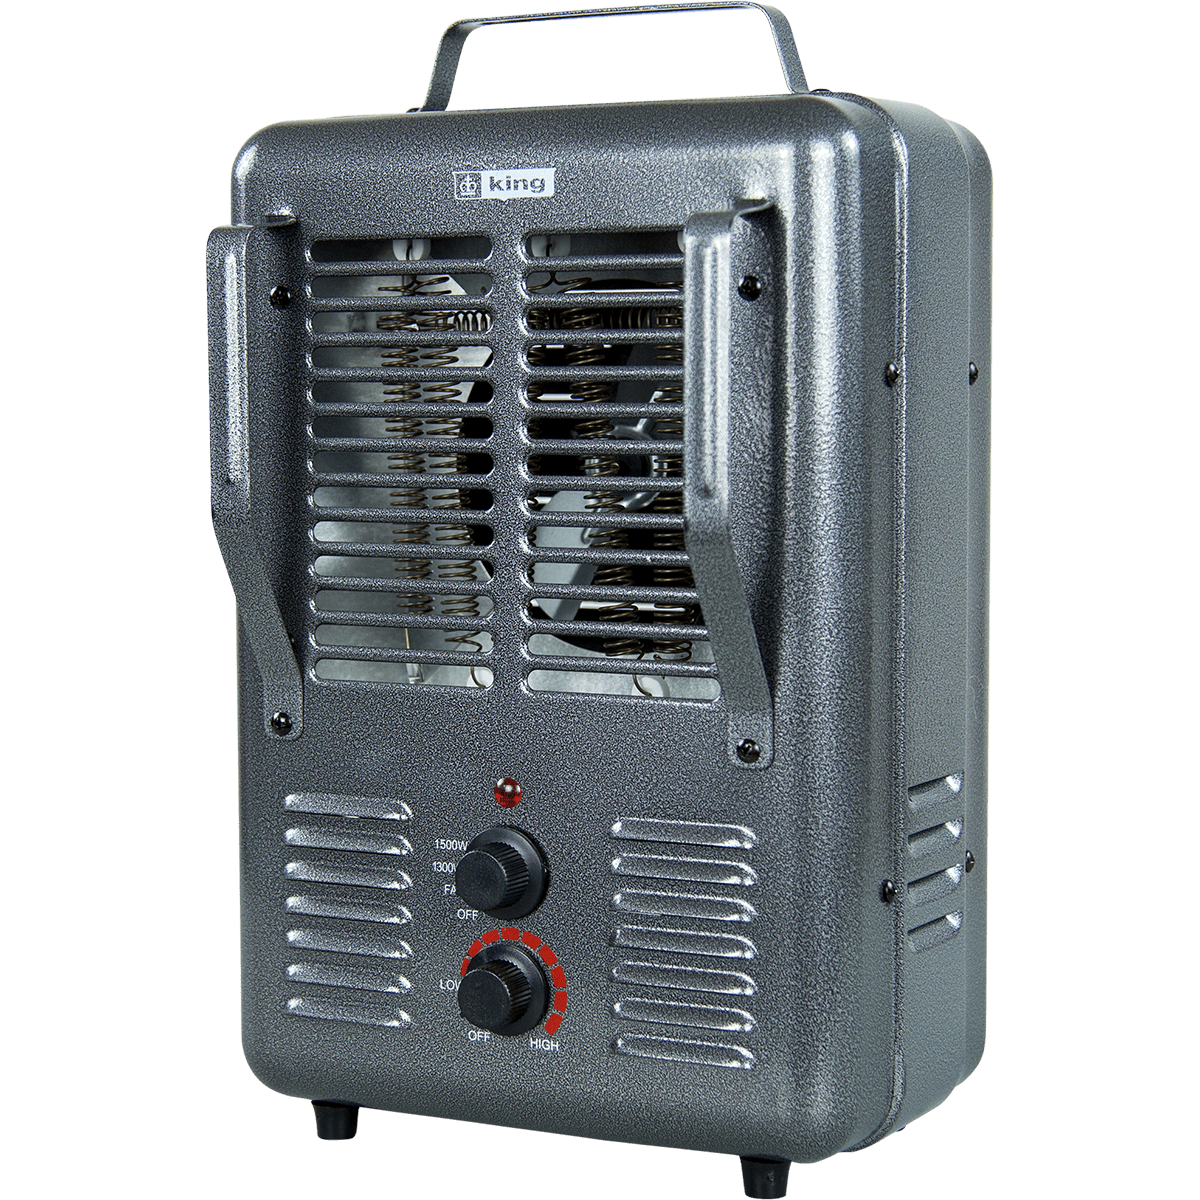 King Electric PHM-1 Portable Milkhouse Utility Heater ...